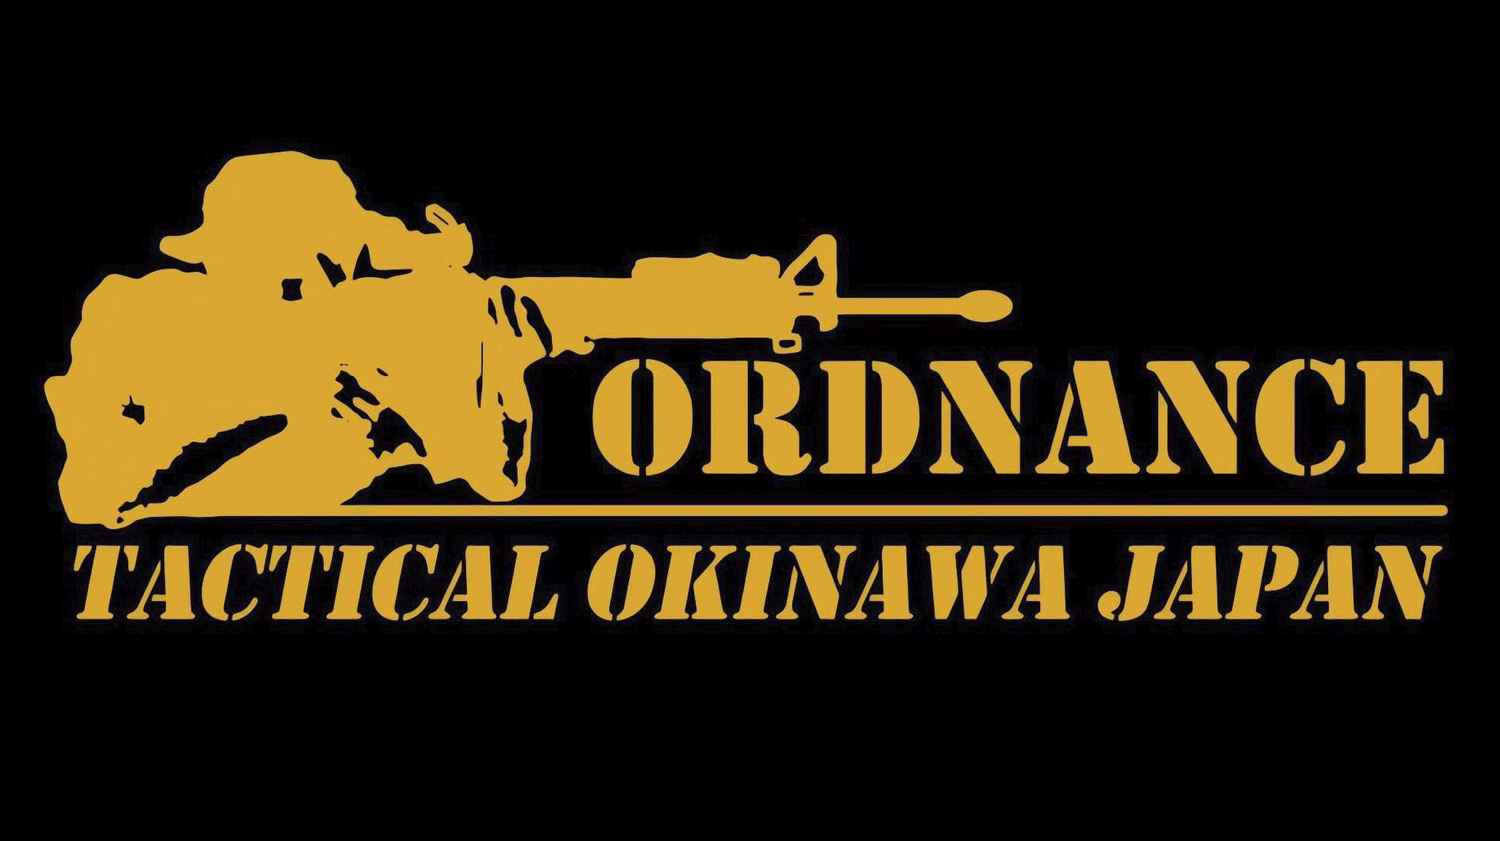 ORDNANCE TACTICAL OKINAWA